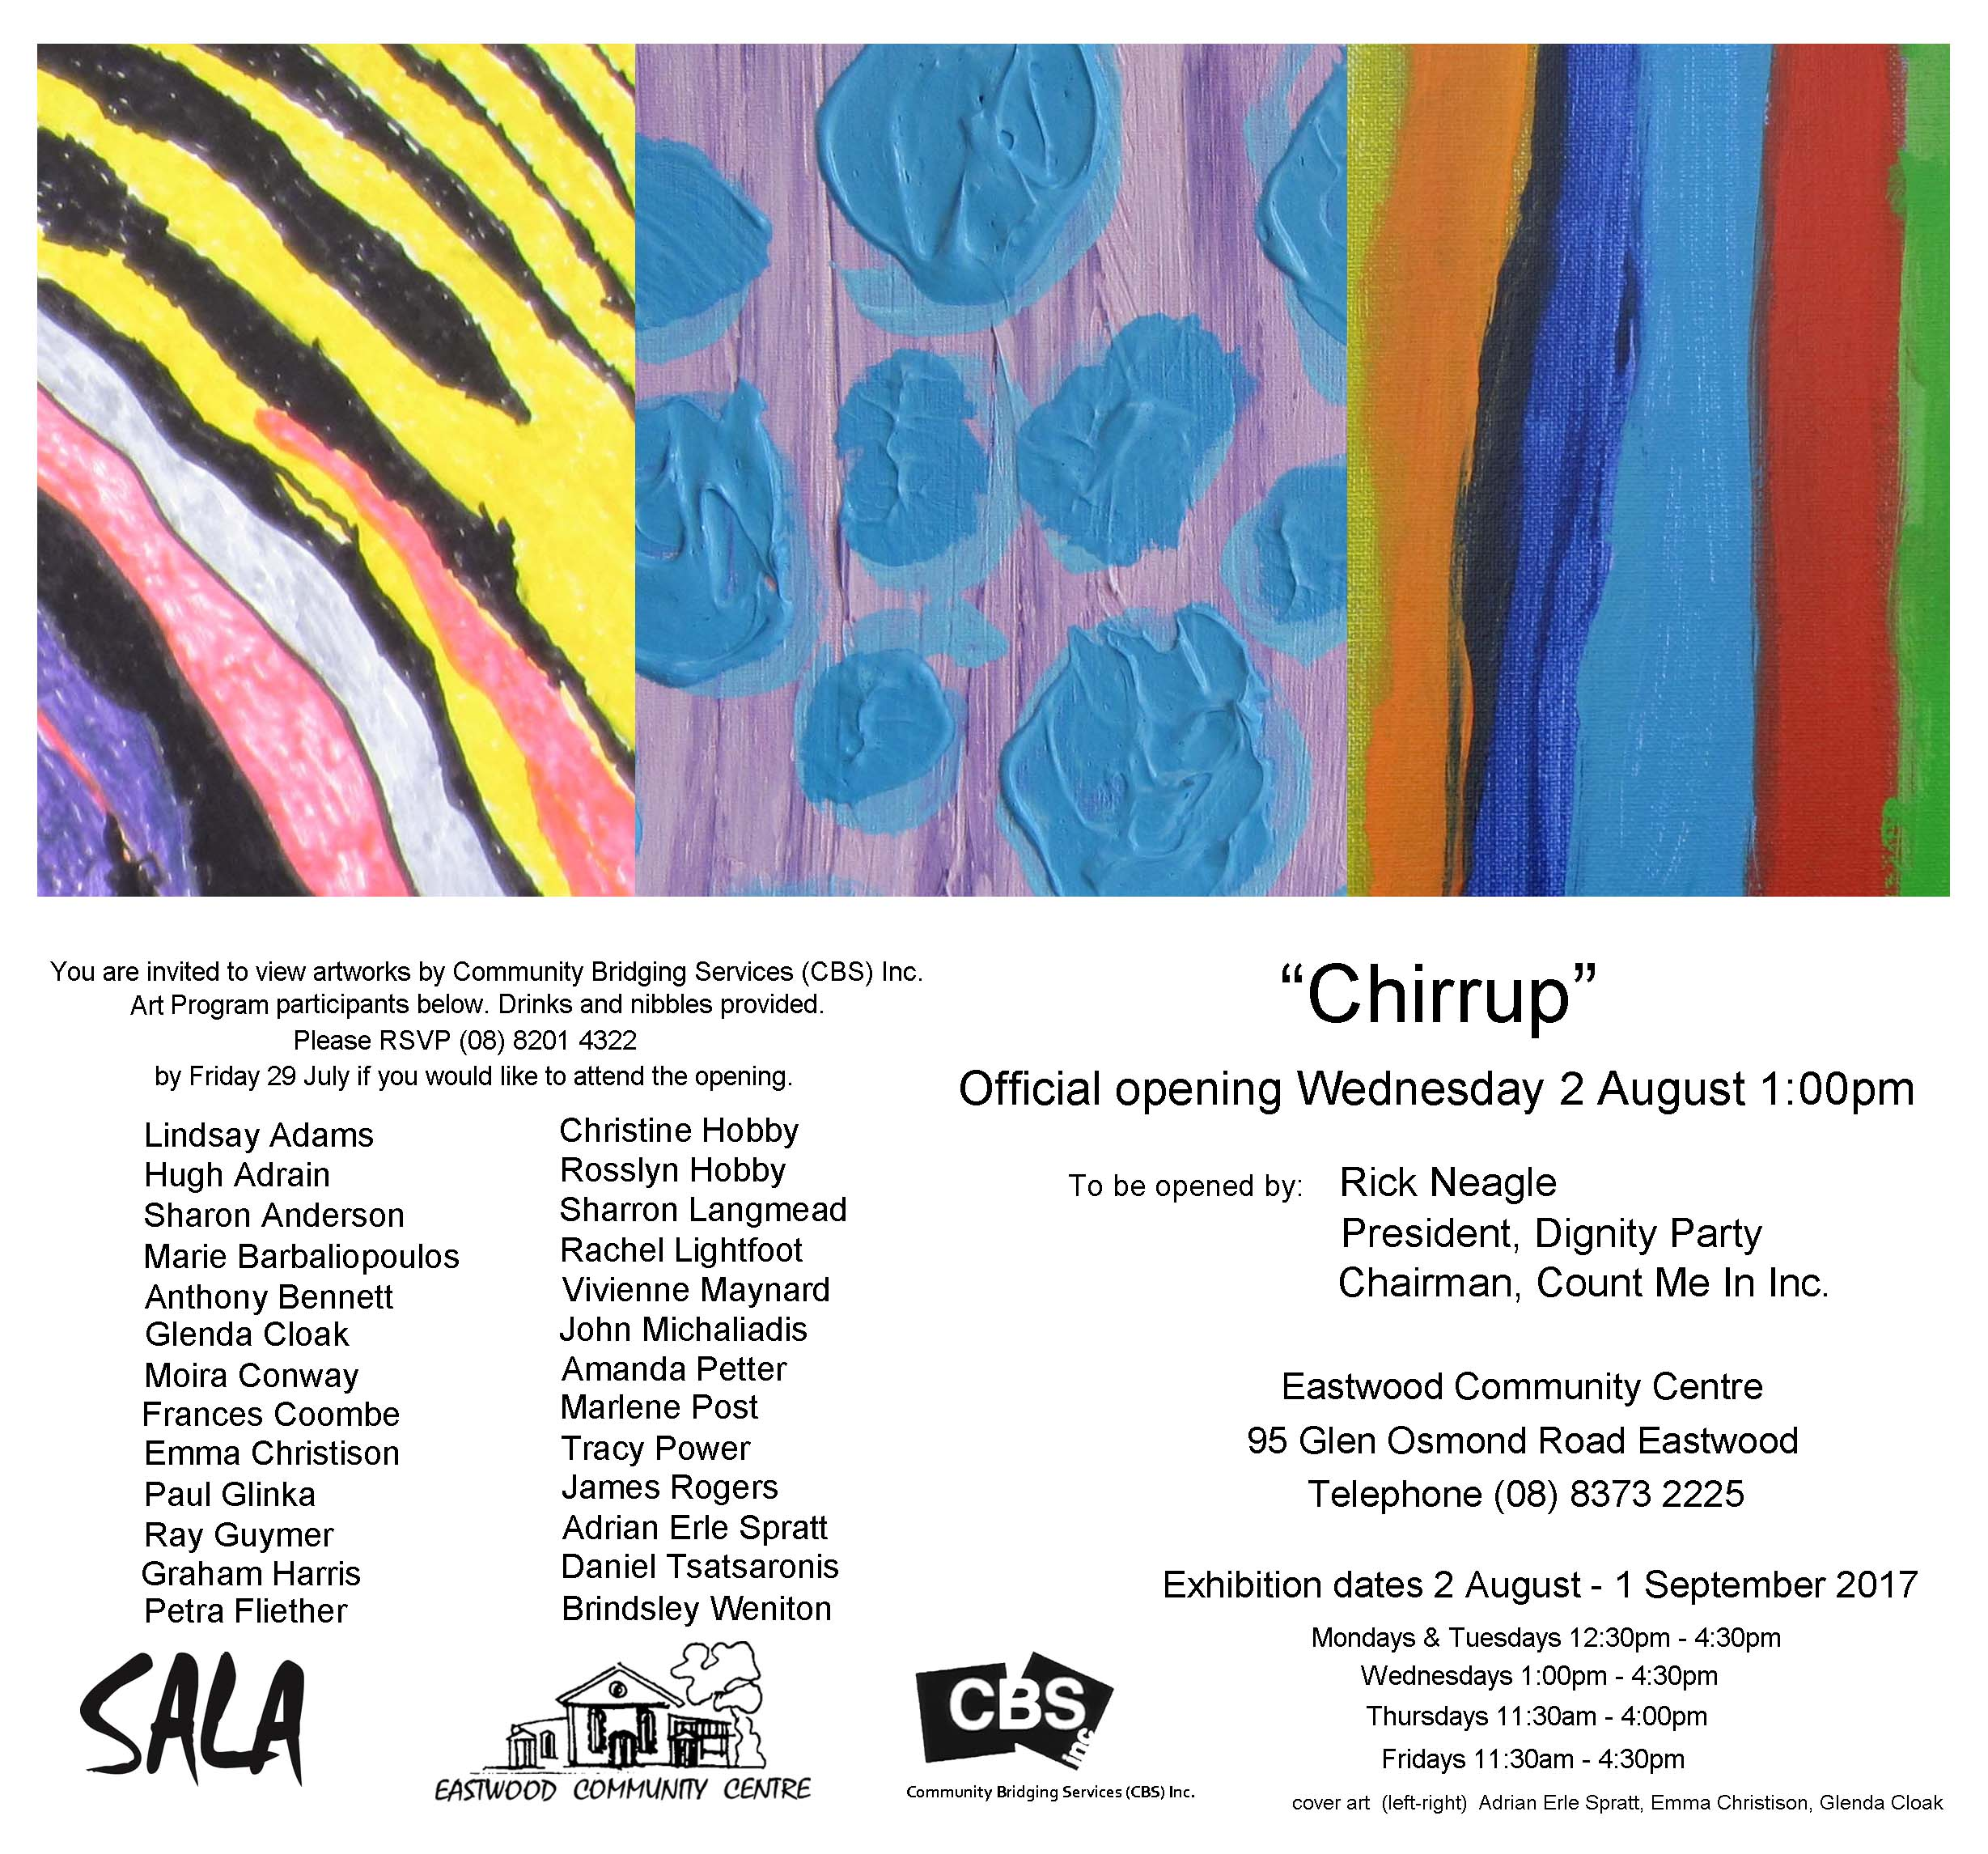 chirrup art exhibit